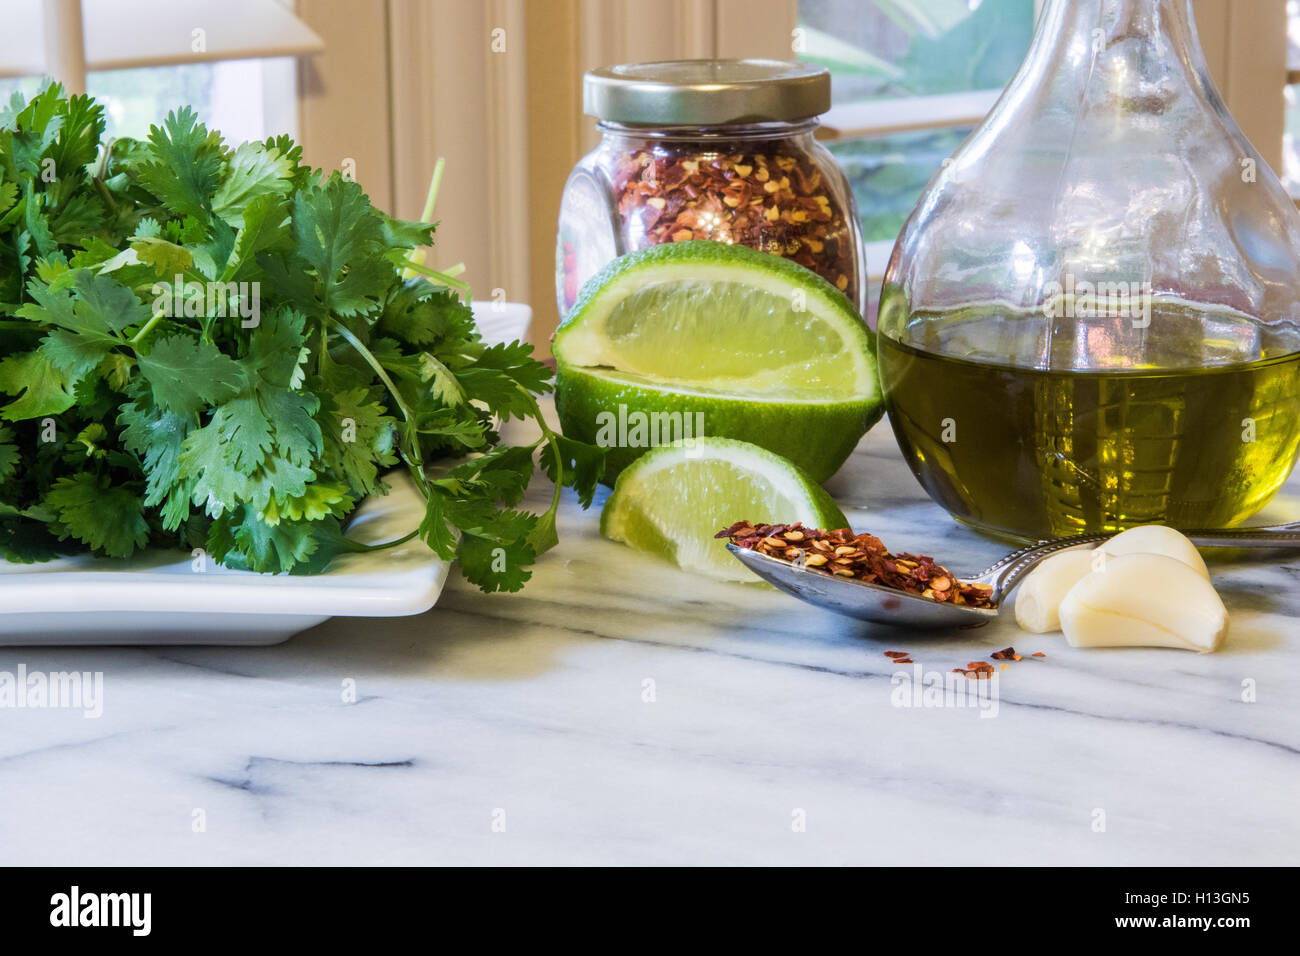 Mexican food ingredients in a kitchen on a marble top . Cilantro red pepper flakes lime garlic olive oil - Stock Image